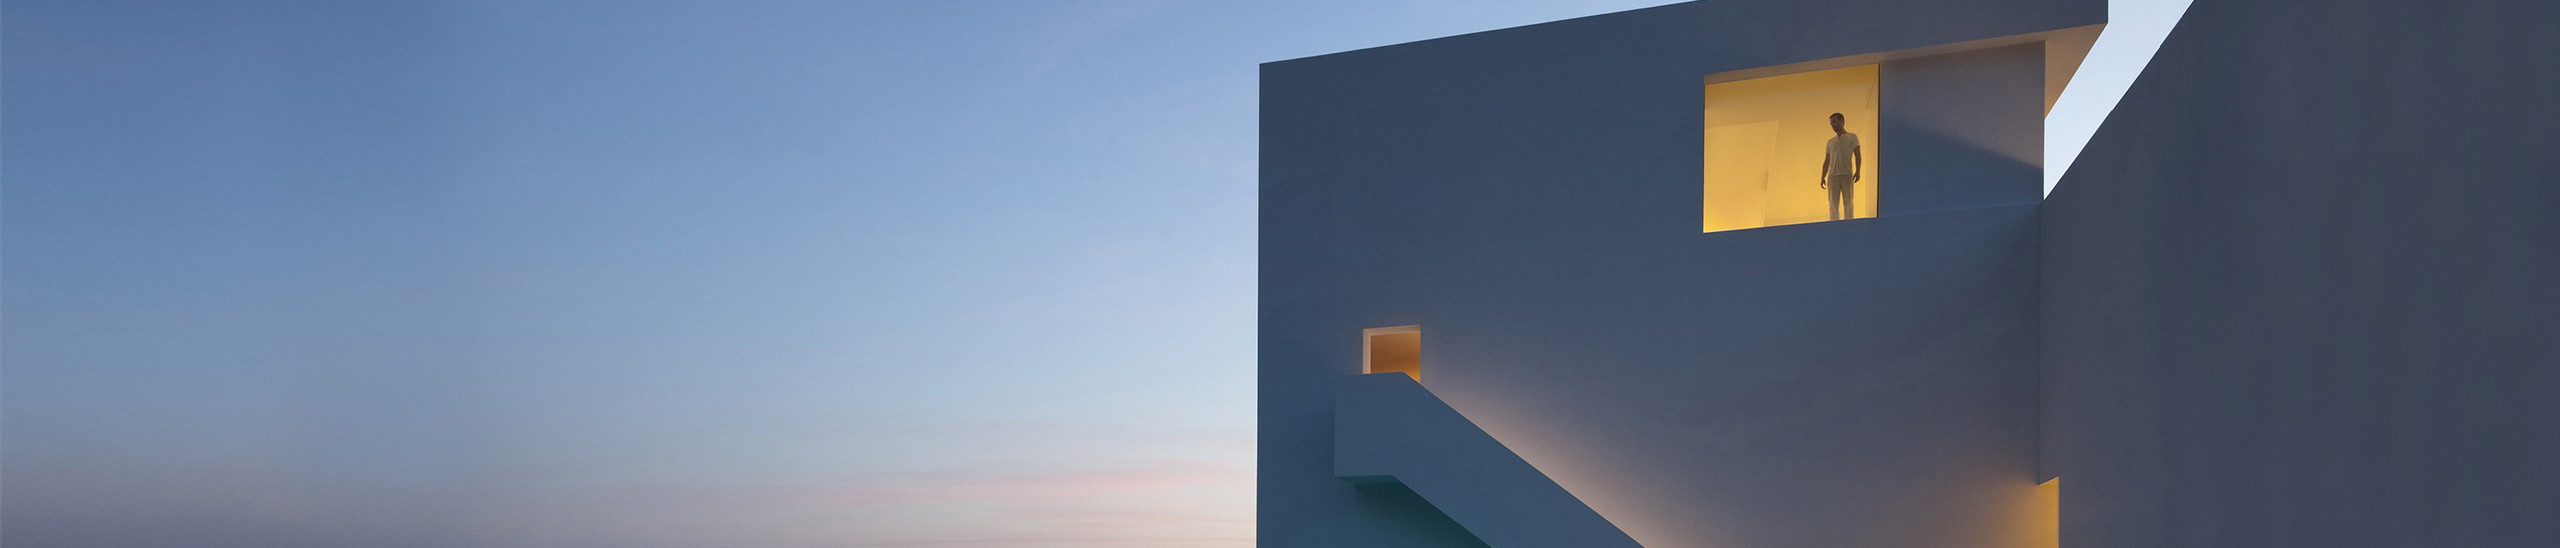 Share and discover Architecture and Interior design